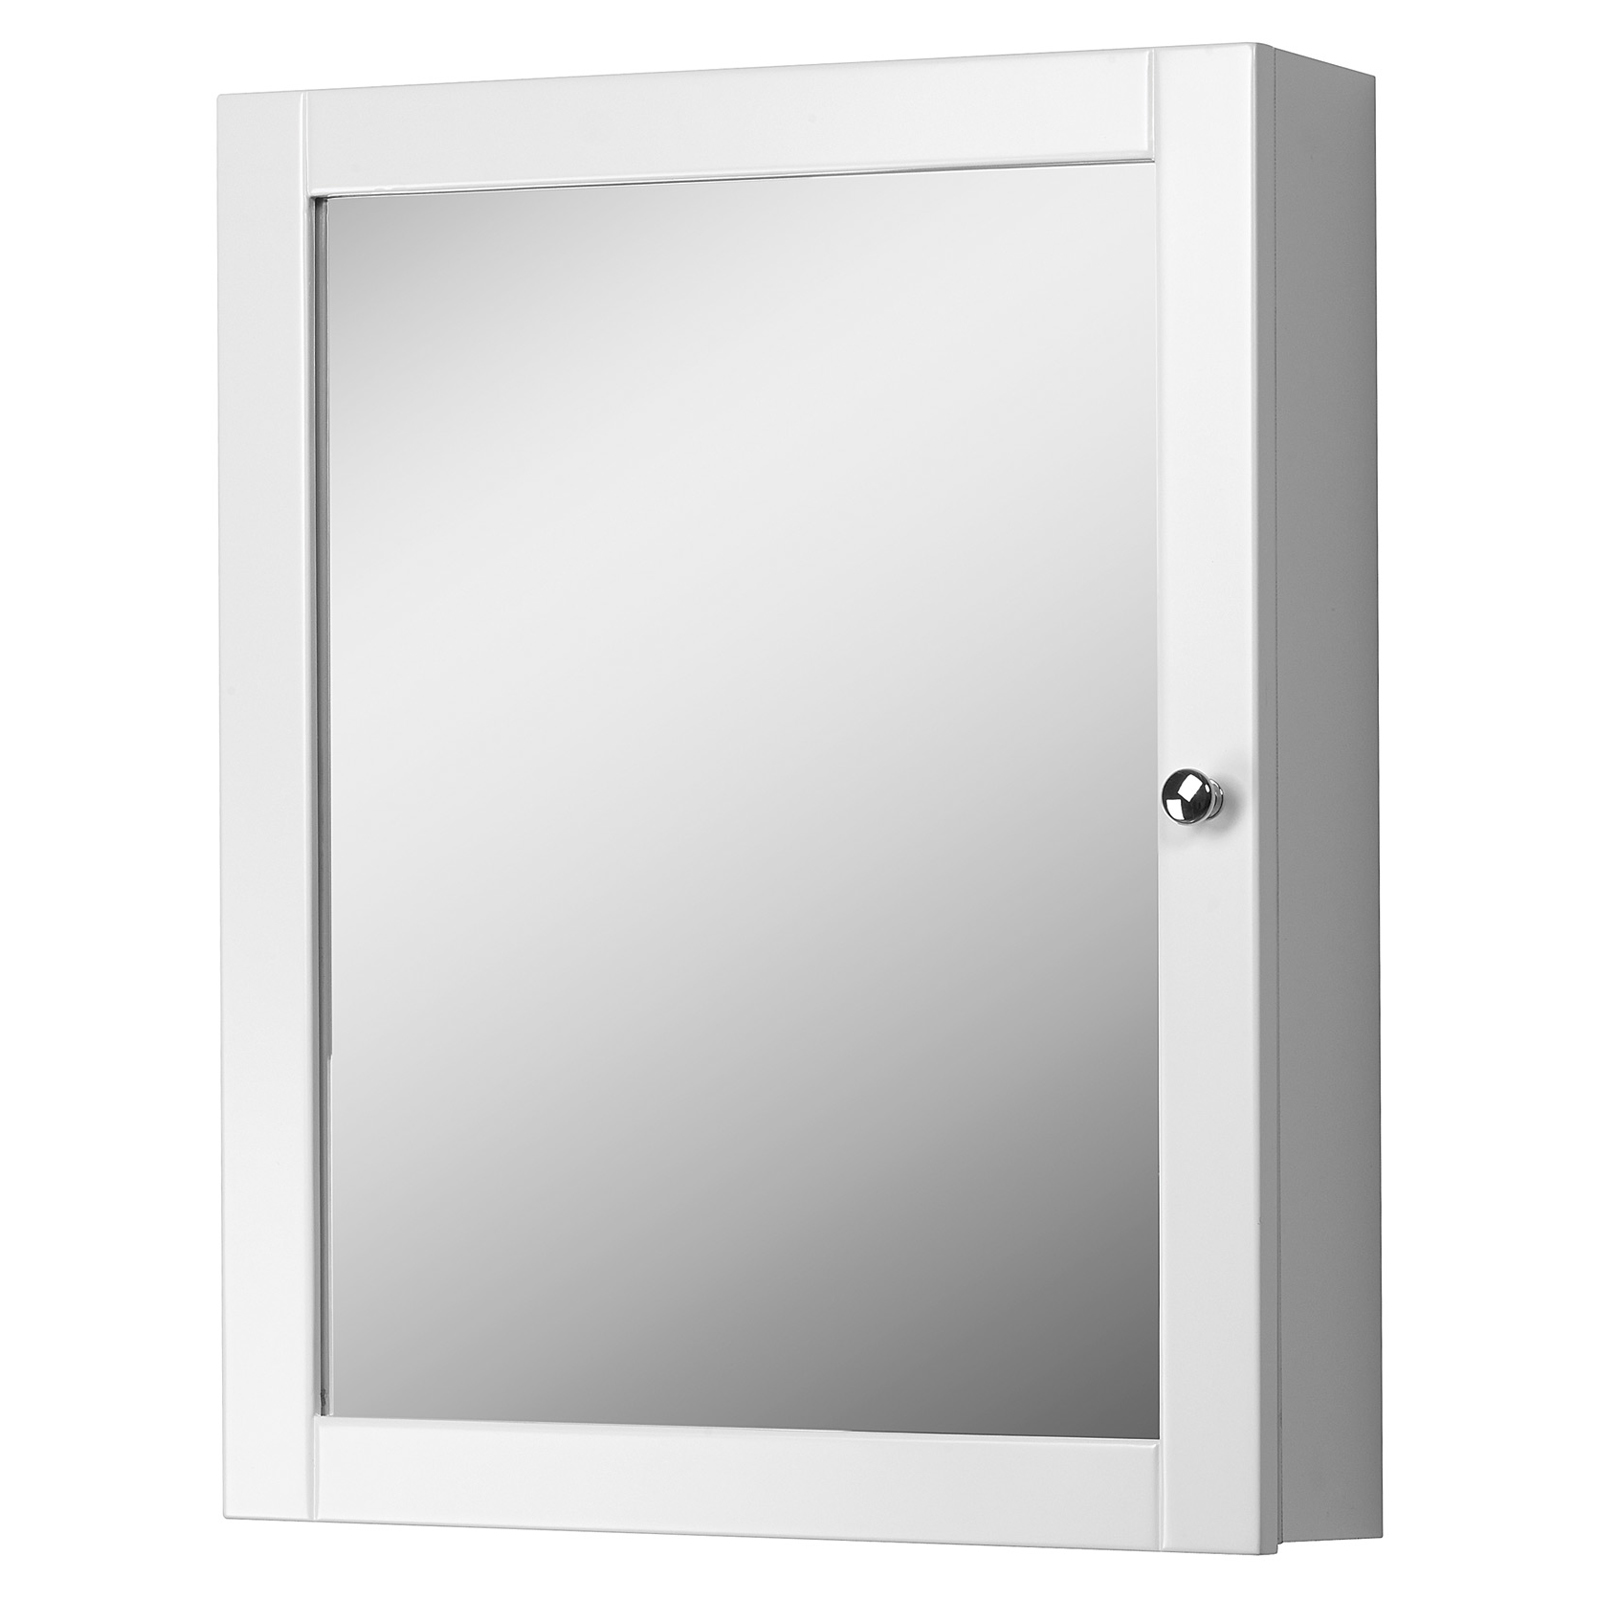 Foremost Columbia 19in White Bathroom Medicine Cabinet